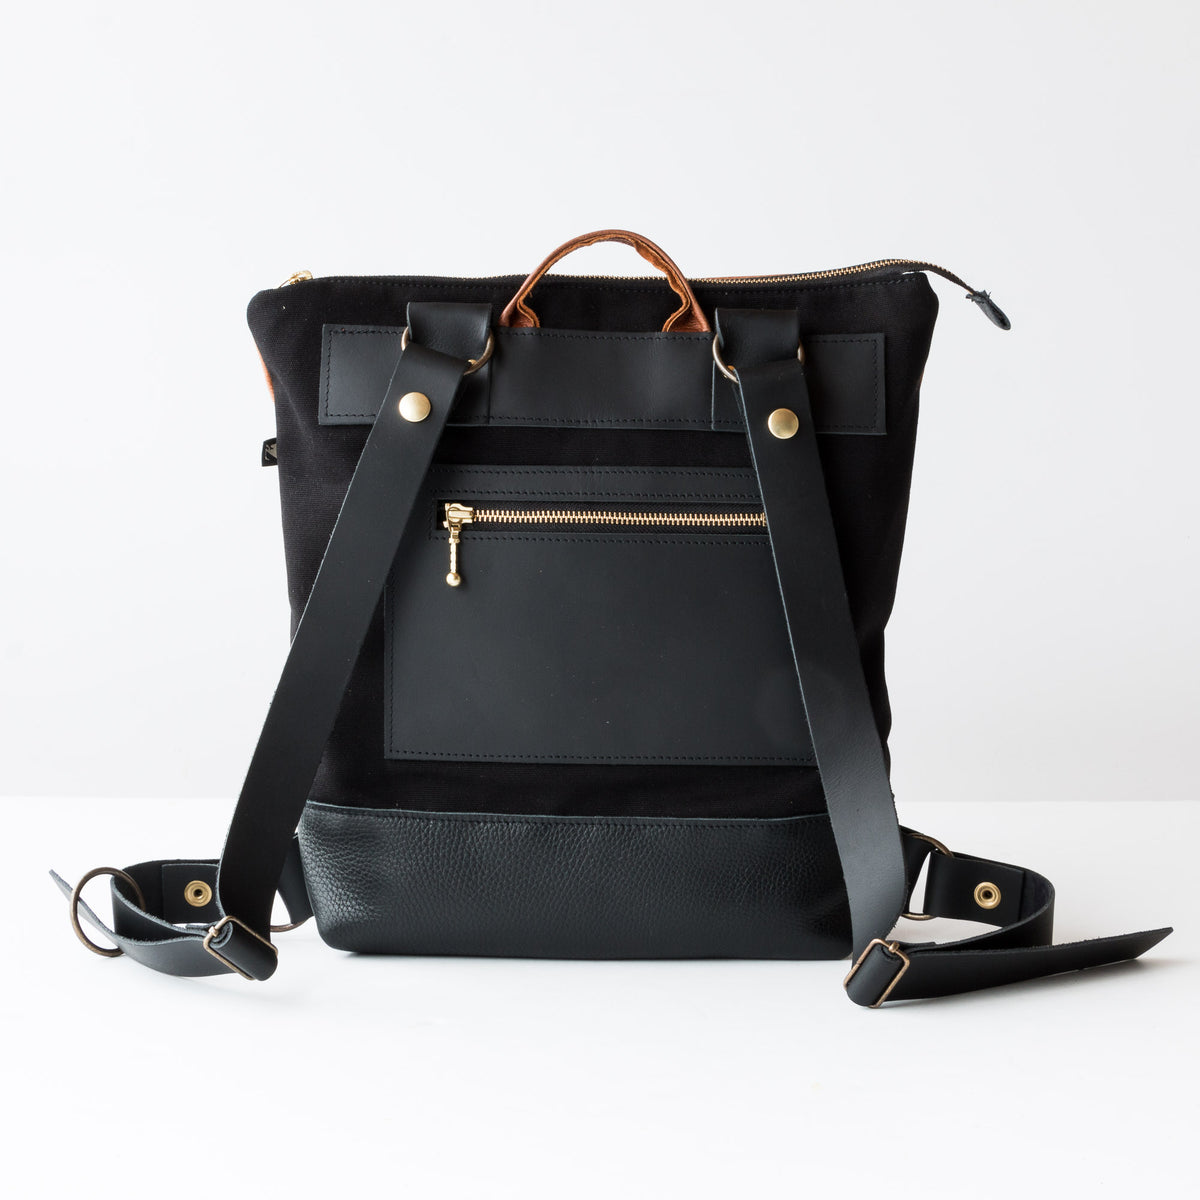 View from Back - Hobart - Backpack / Laptop Bag - Caramel & Black Leather - Sold by Chic & Basta